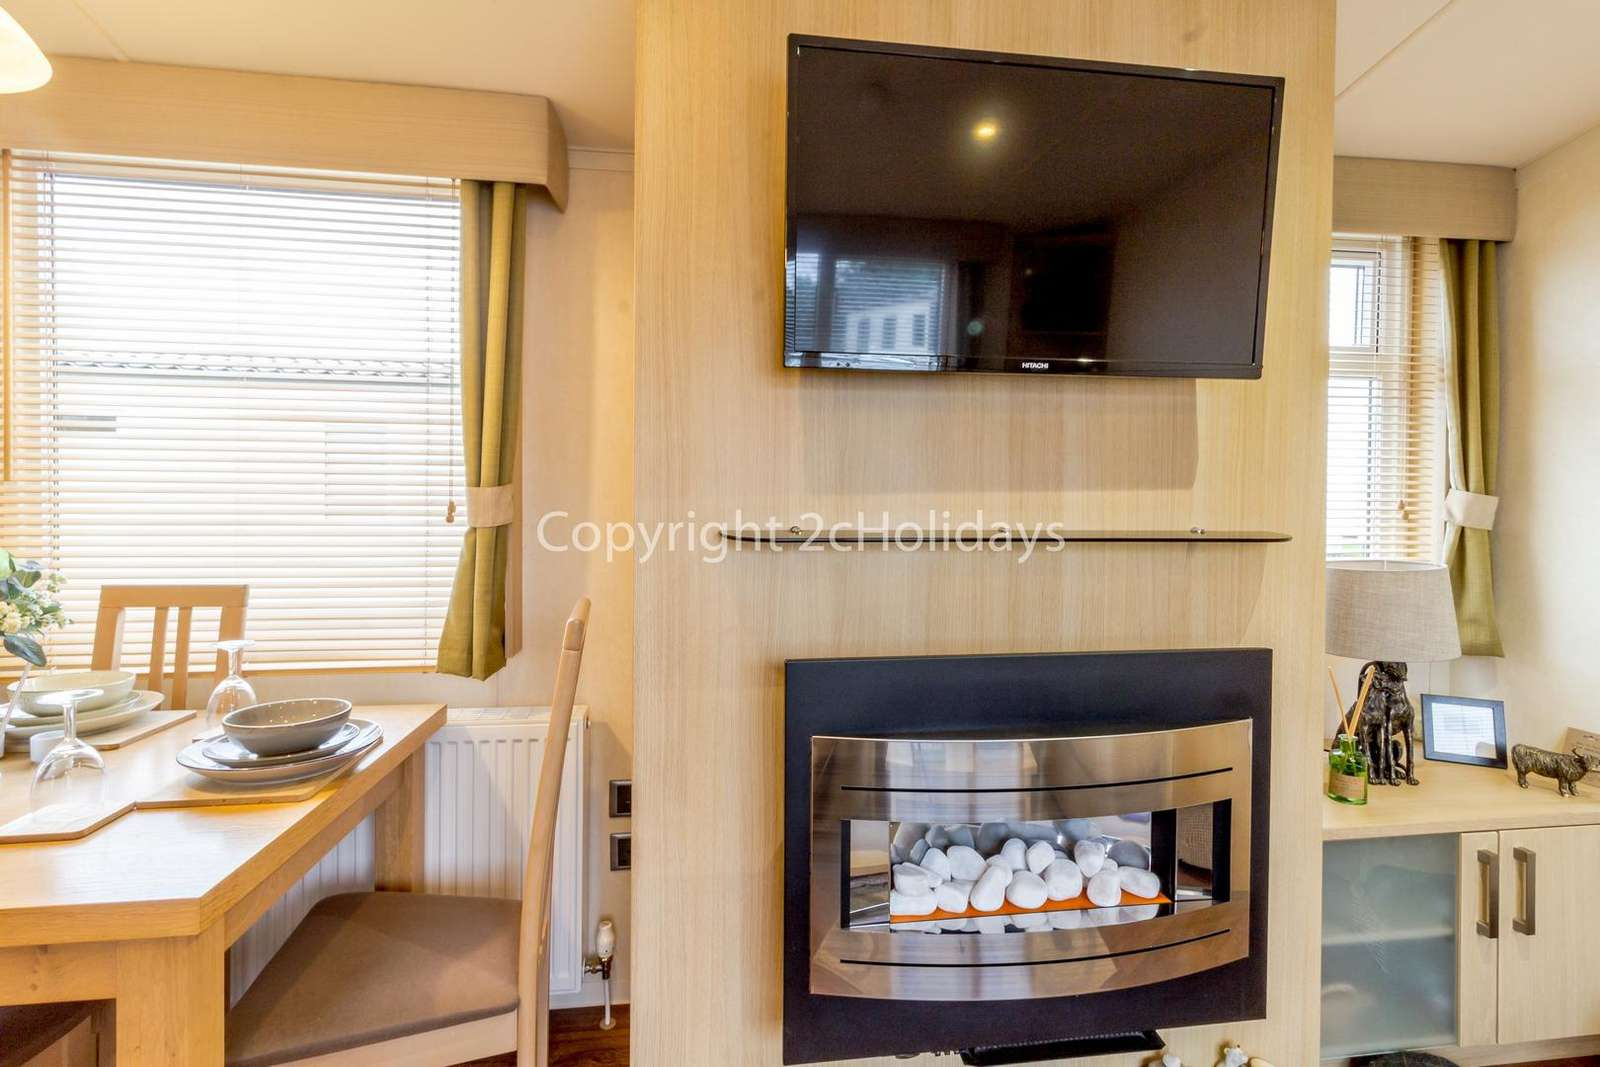 Cosy feel with an electric fire!